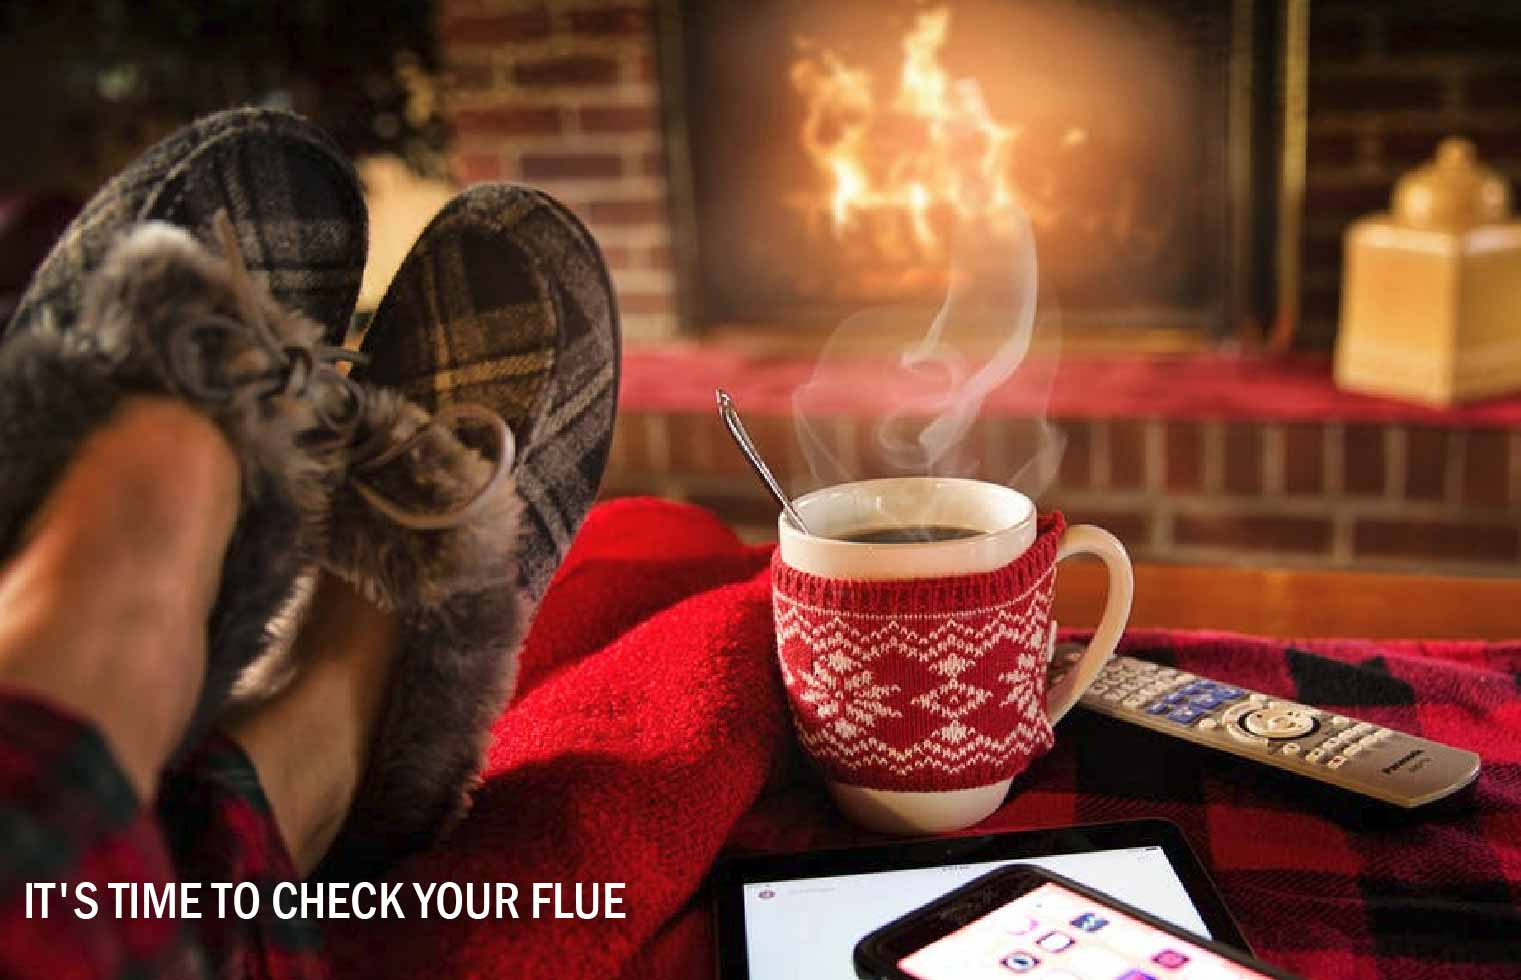 It is Time to Check Your Flue